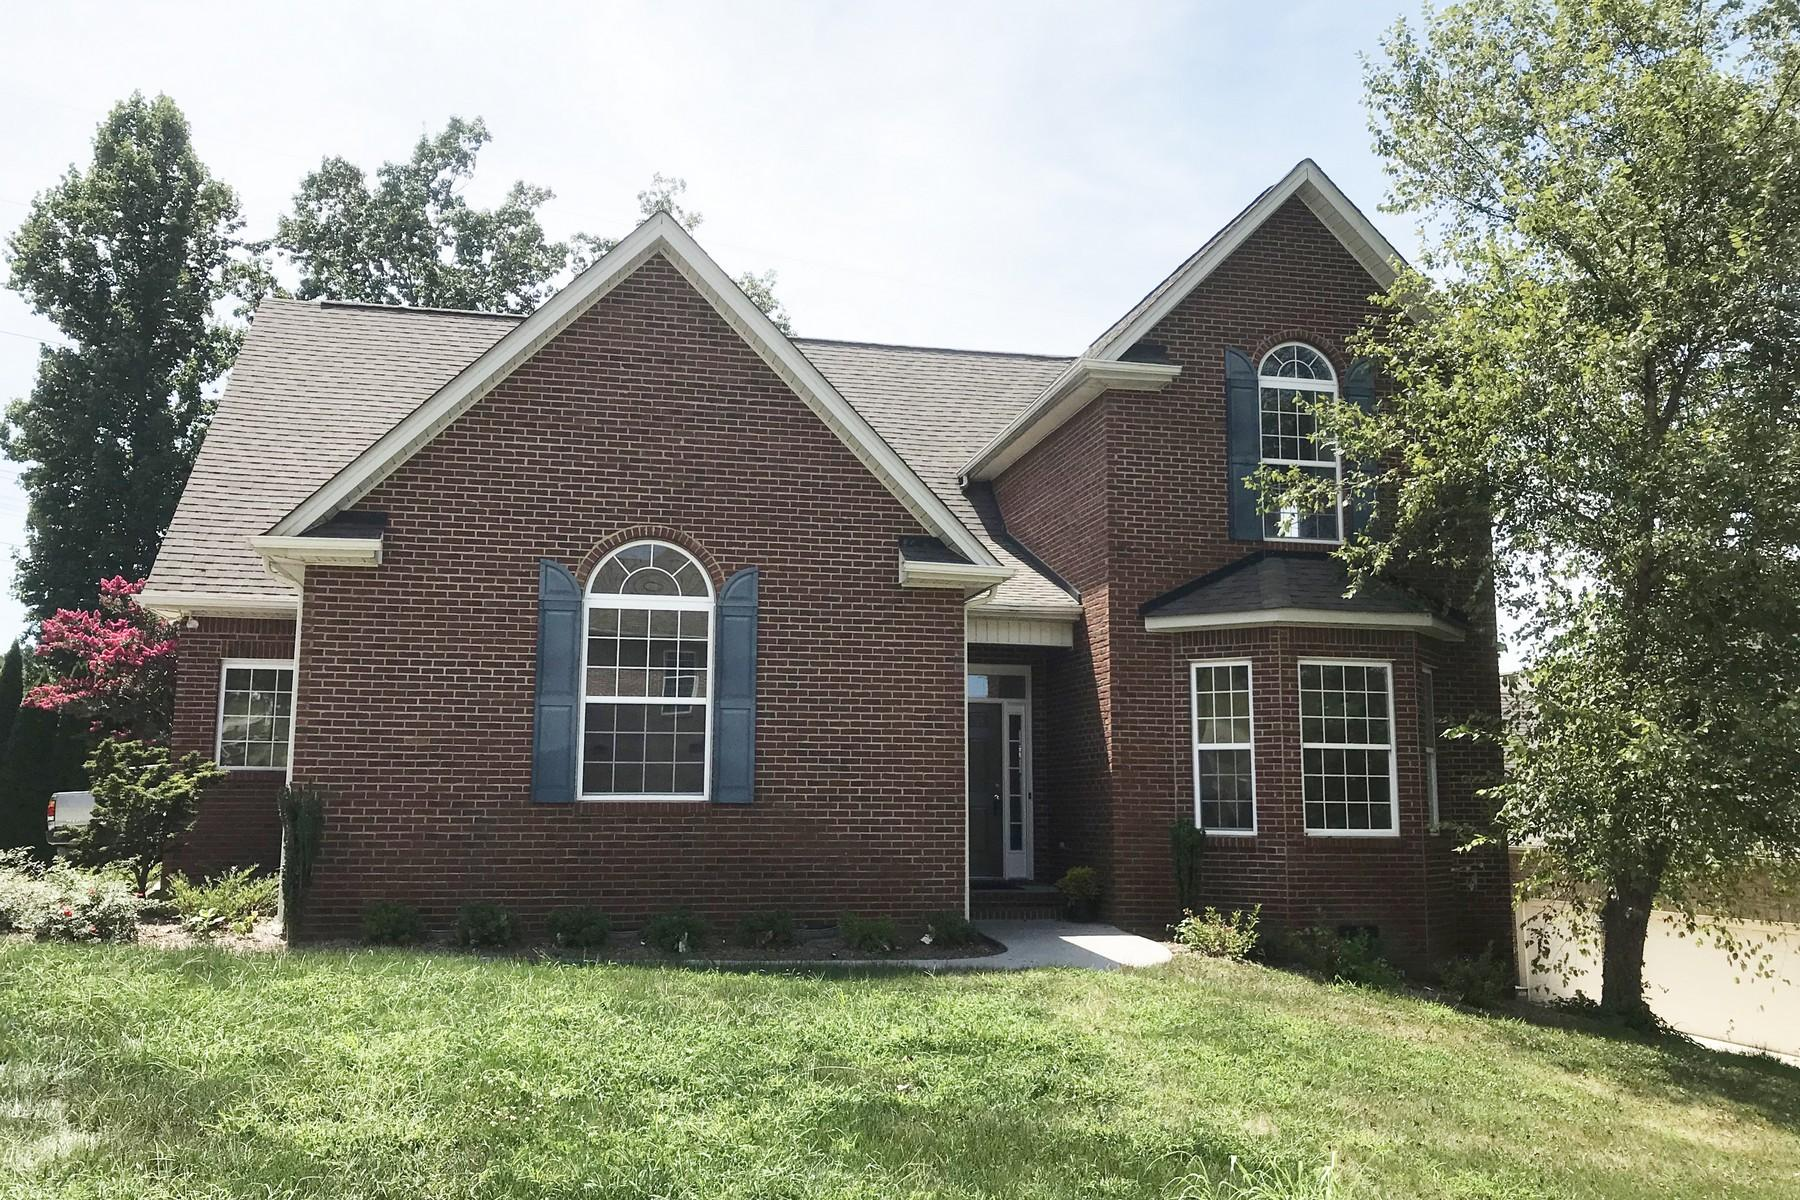 1615 Briarfield Lane, Knoxville, Tennessee 37931, 3 Bedrooms Bedrooms, ,2 BathroomsBathrooms,Single Family,For Sale,Briarfield,1090929